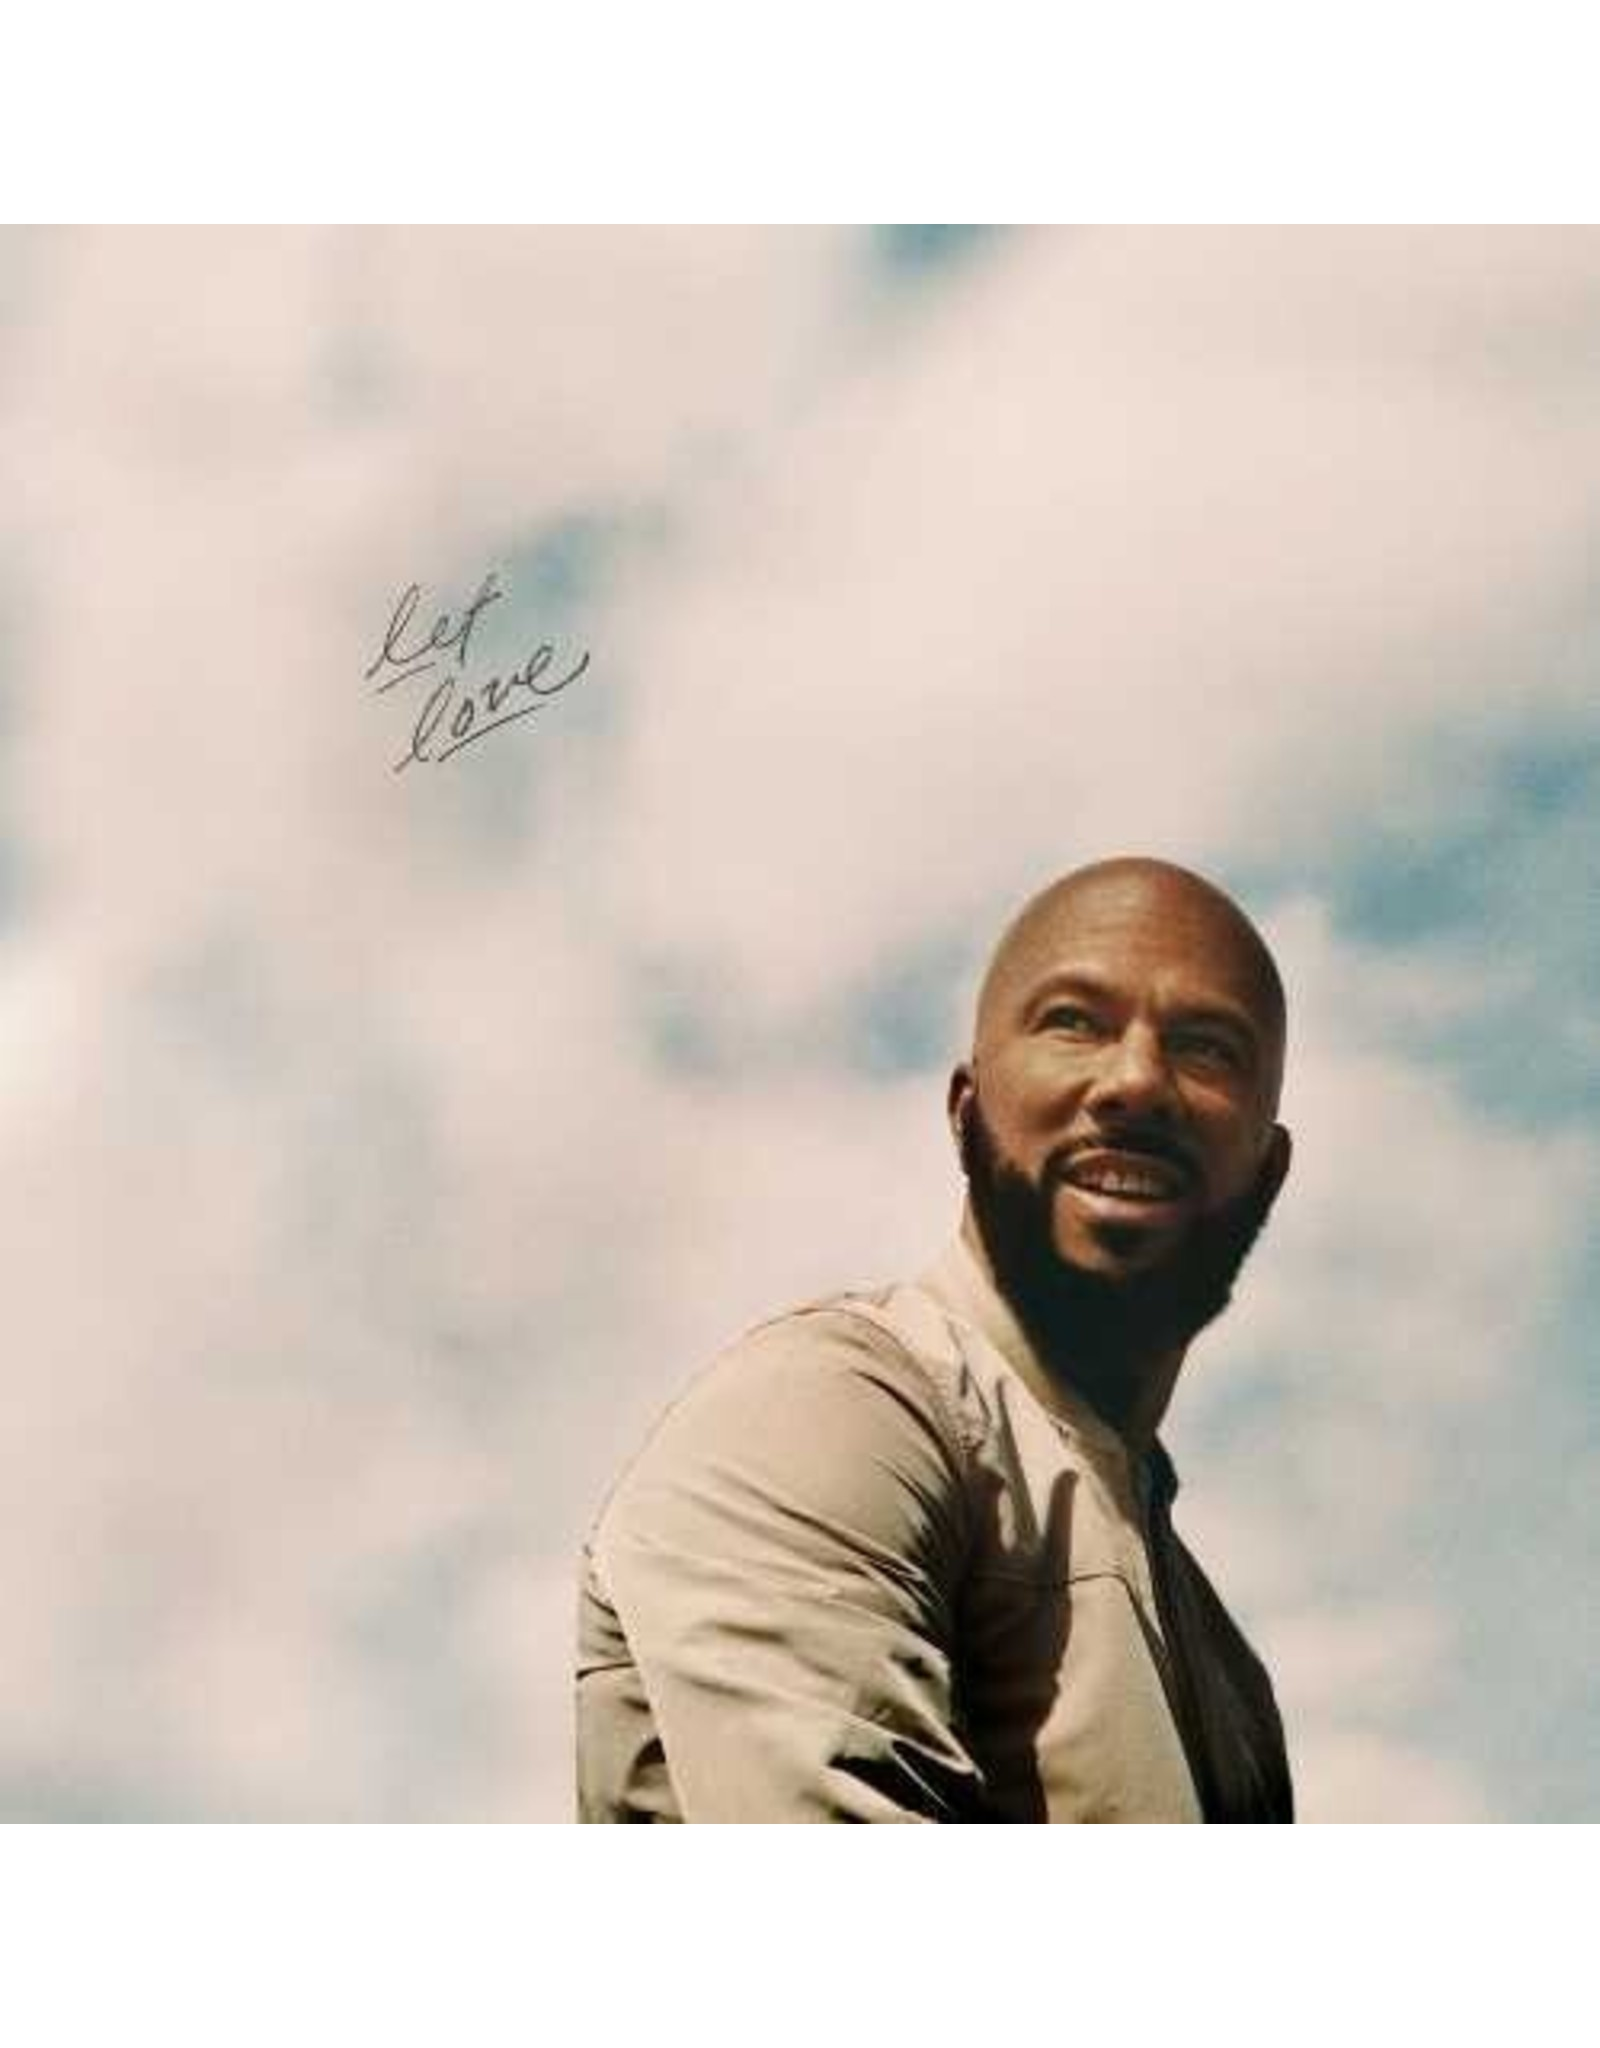 New Vinyl Common - Let Love LP